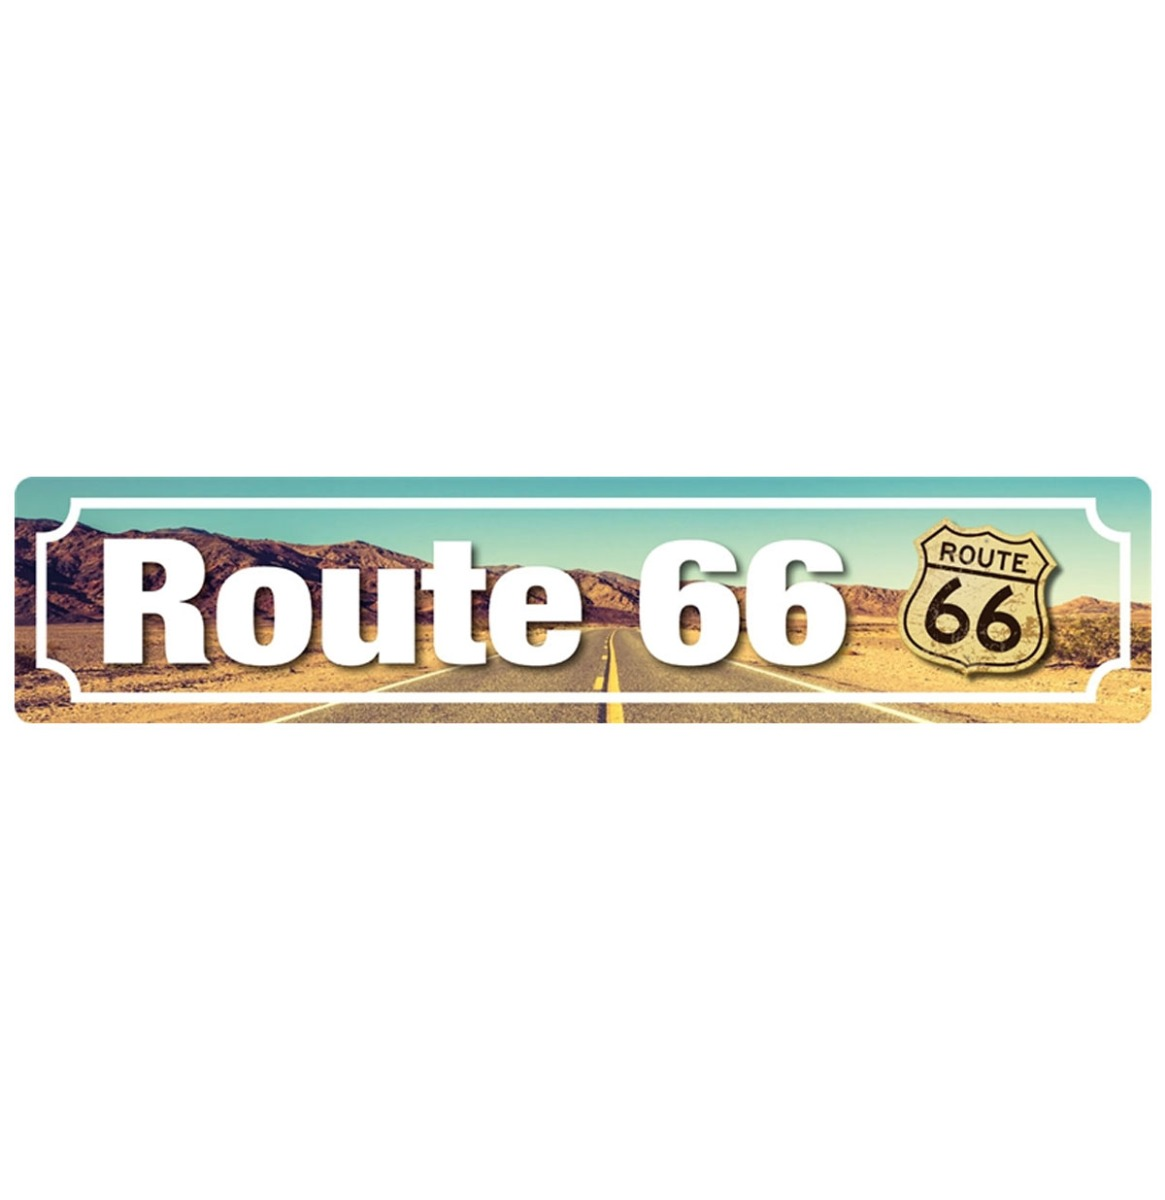 Route 66 Street Sign Magneet 16 x 3.5 cm